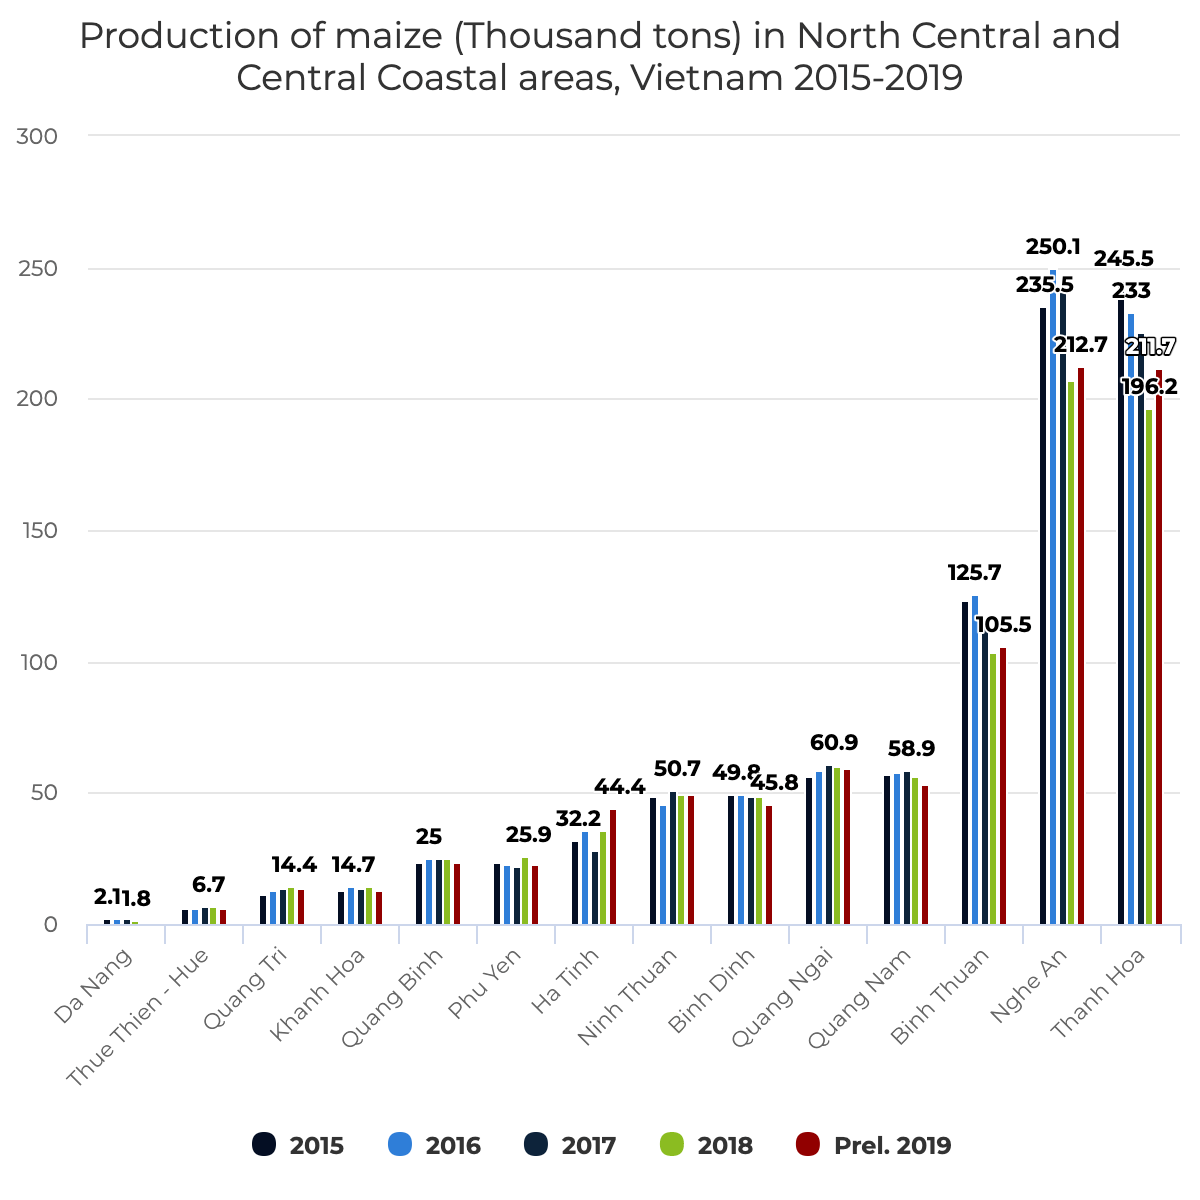 Production of maize (Thousand tons) in North Central and Central Coastal areas, Vietnam 2015-2019